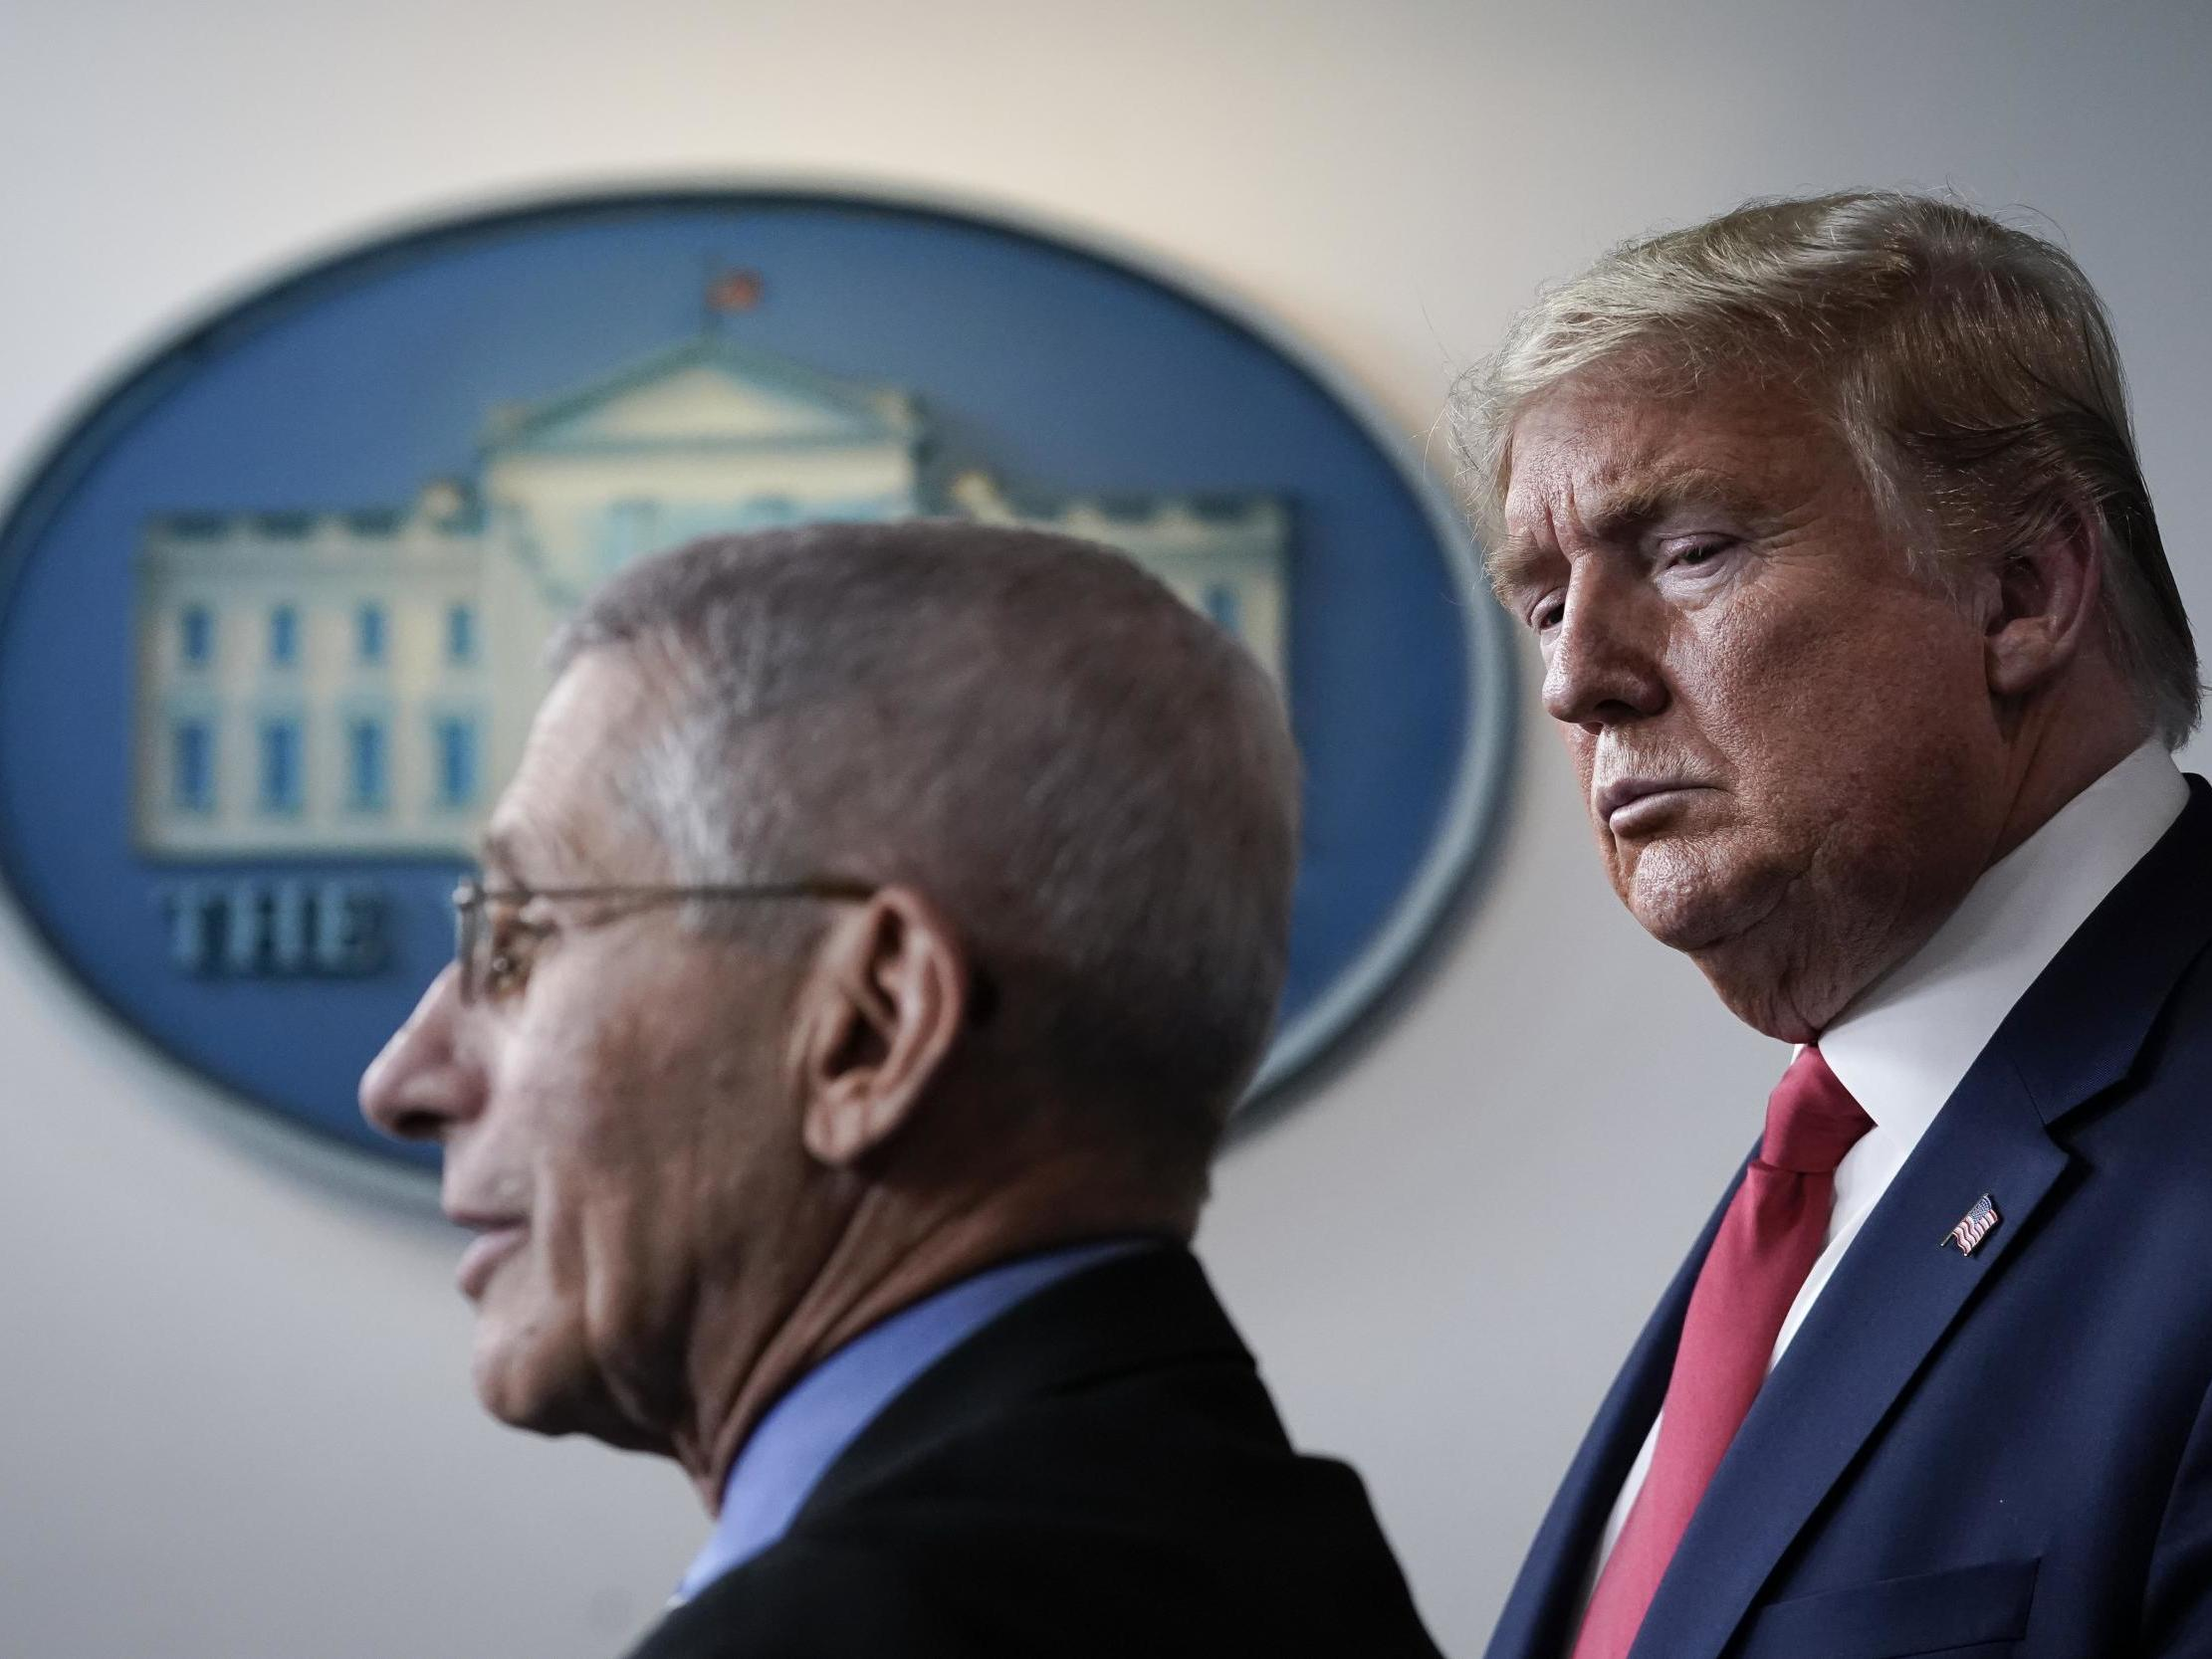 Coronavirus: Trump's top expert Dr Fauci 'can't guarantee' it will be safe to vote in US election thumbnail